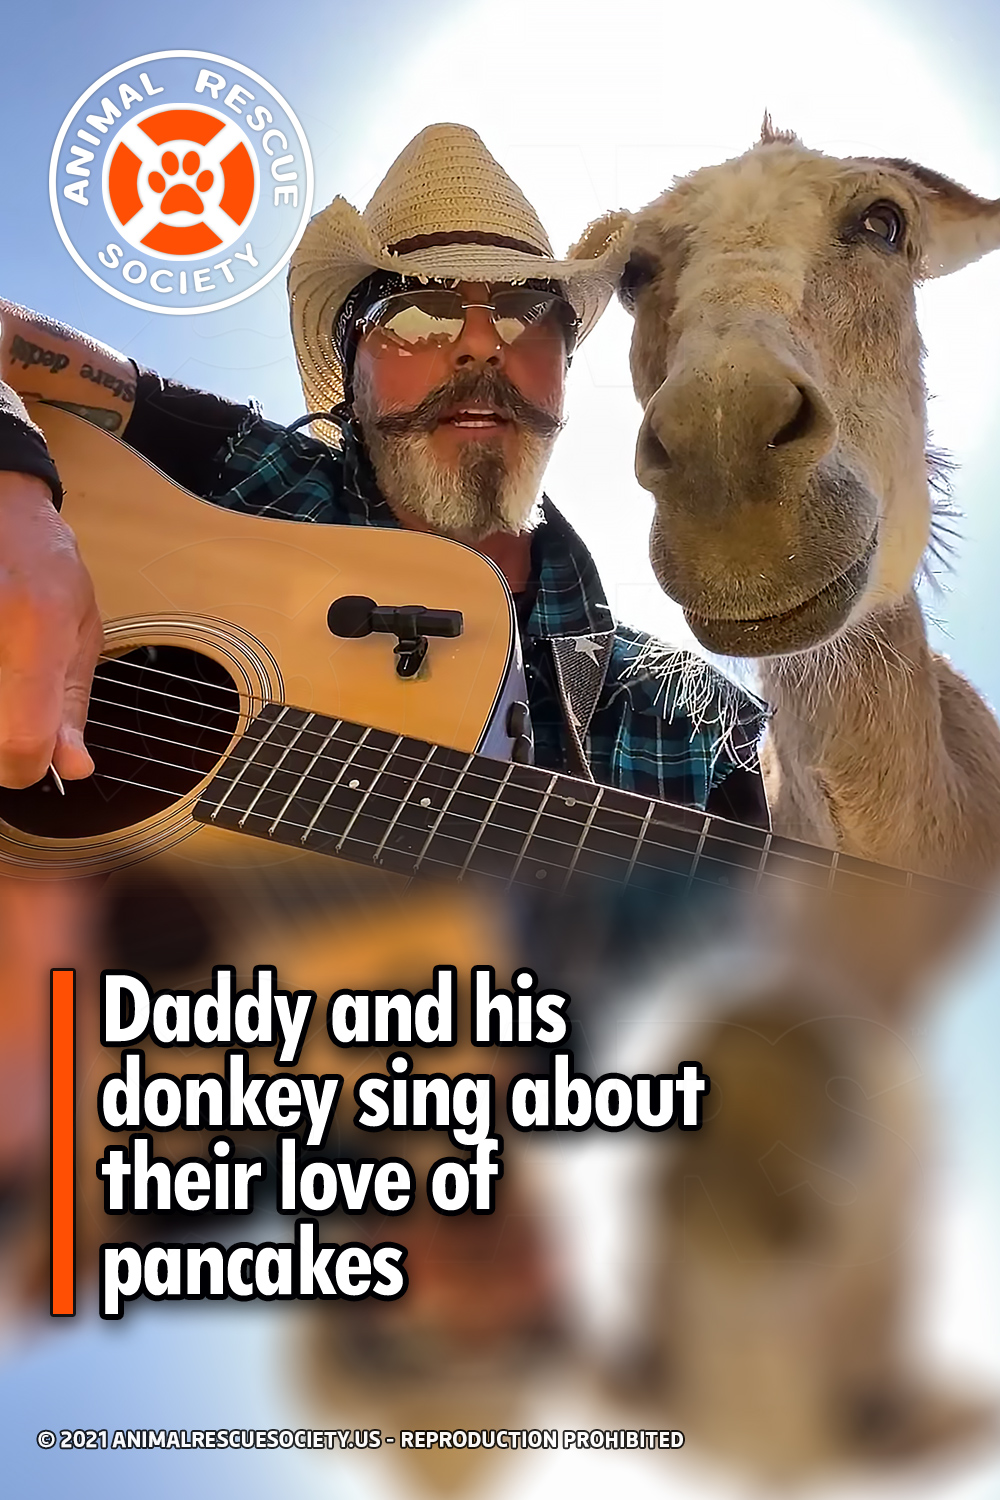 Daddy and his donkey sing about their love of pancakes